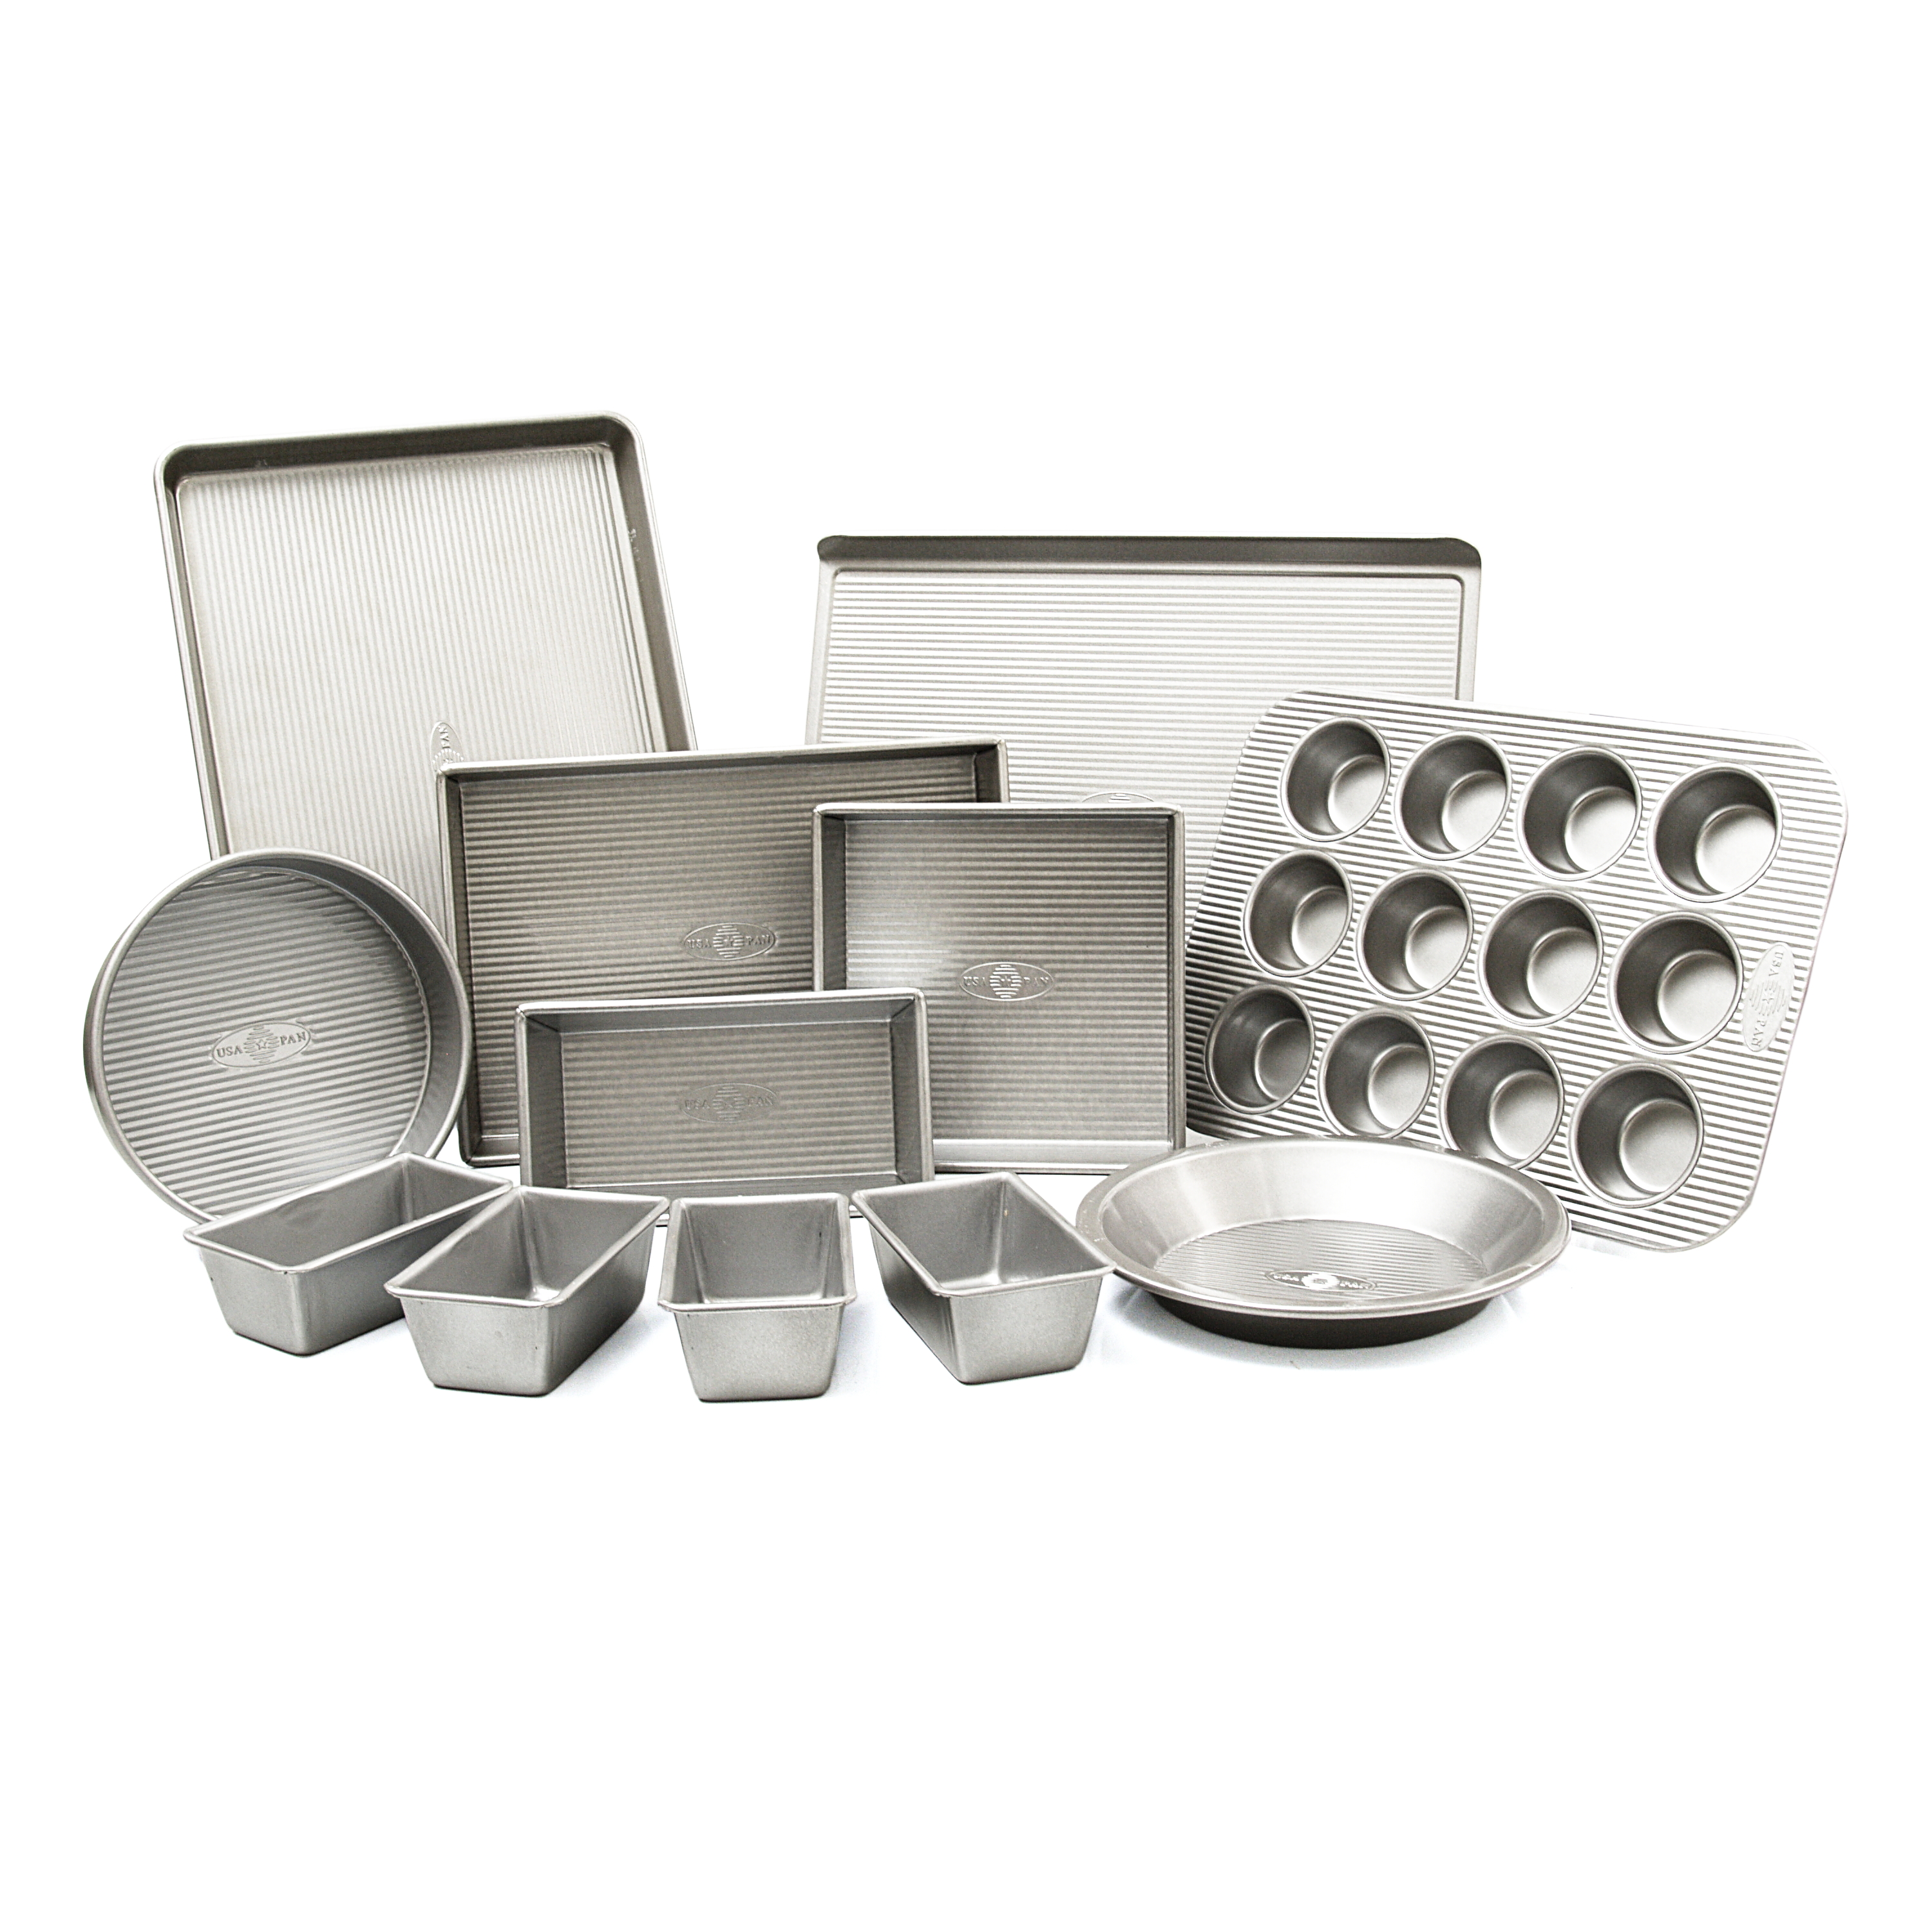 USA Pan 12 Piece Nonstick Baking Set